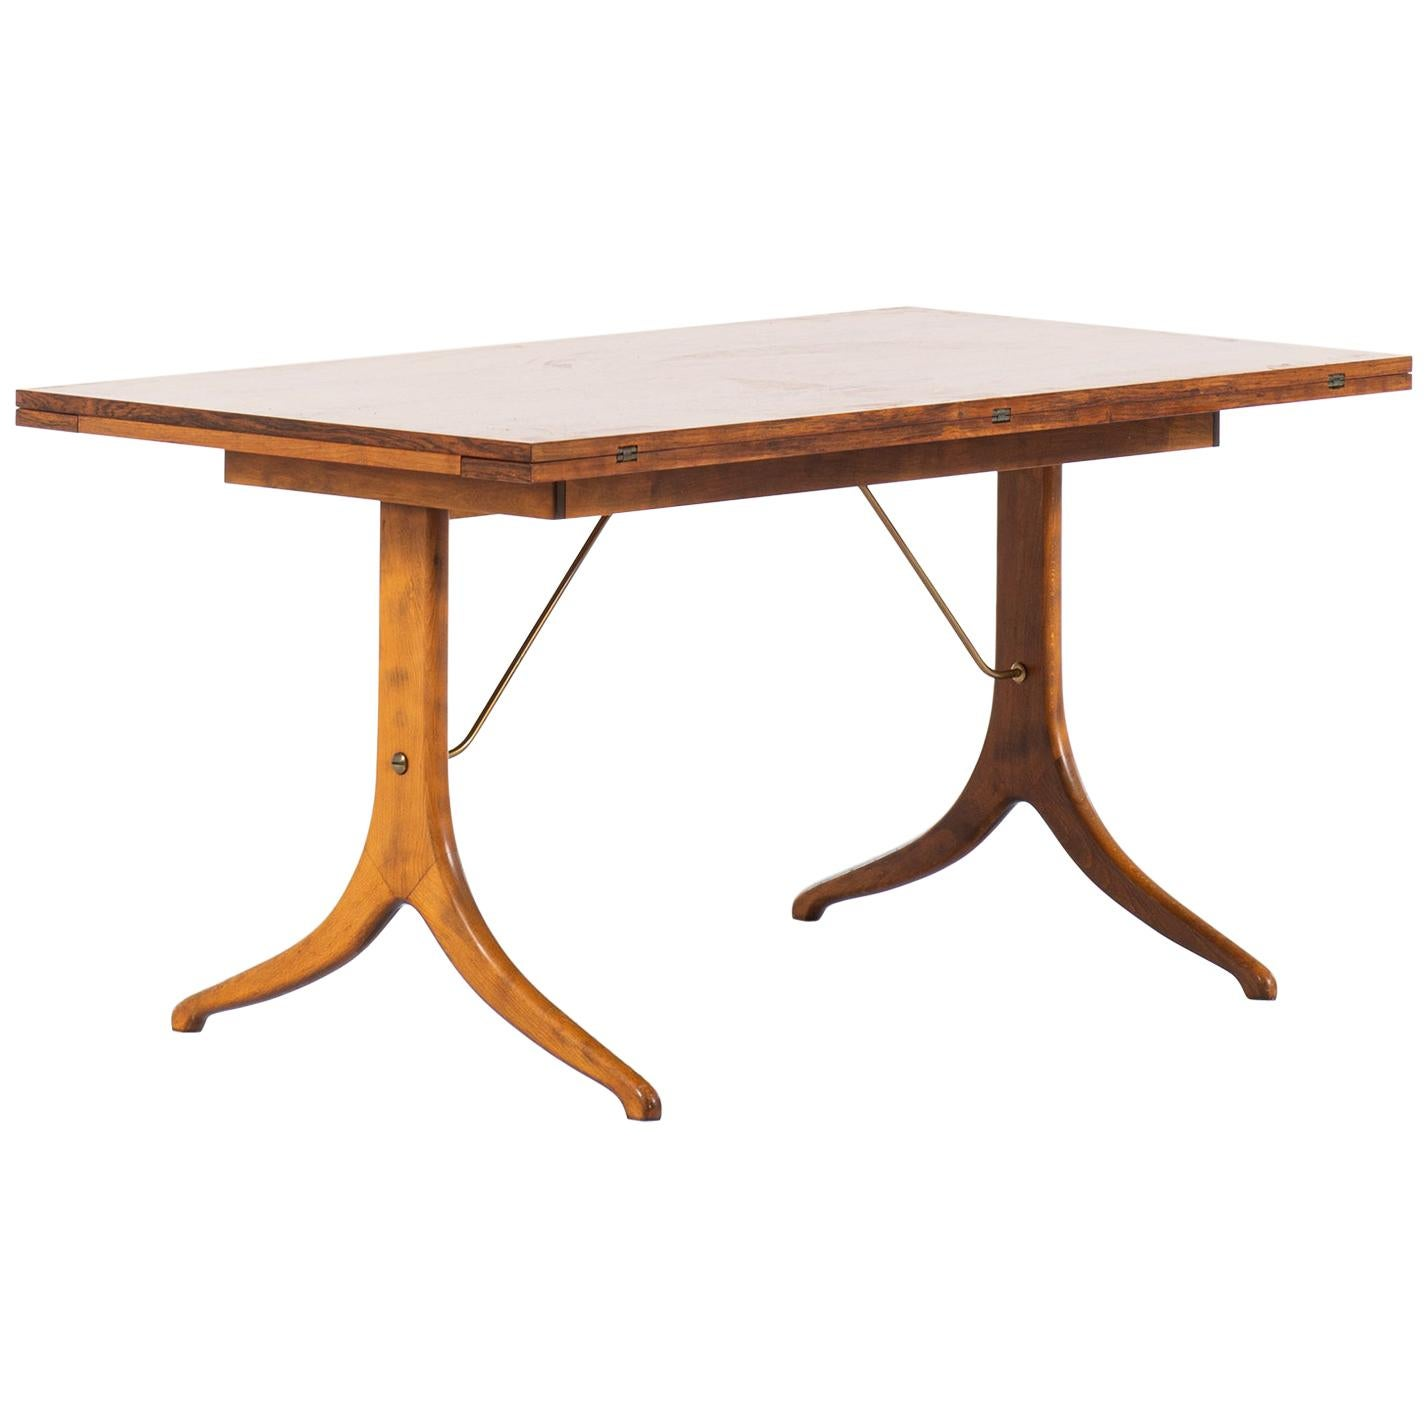 Dining Table Attributed to David Rosén Produced in Sweden